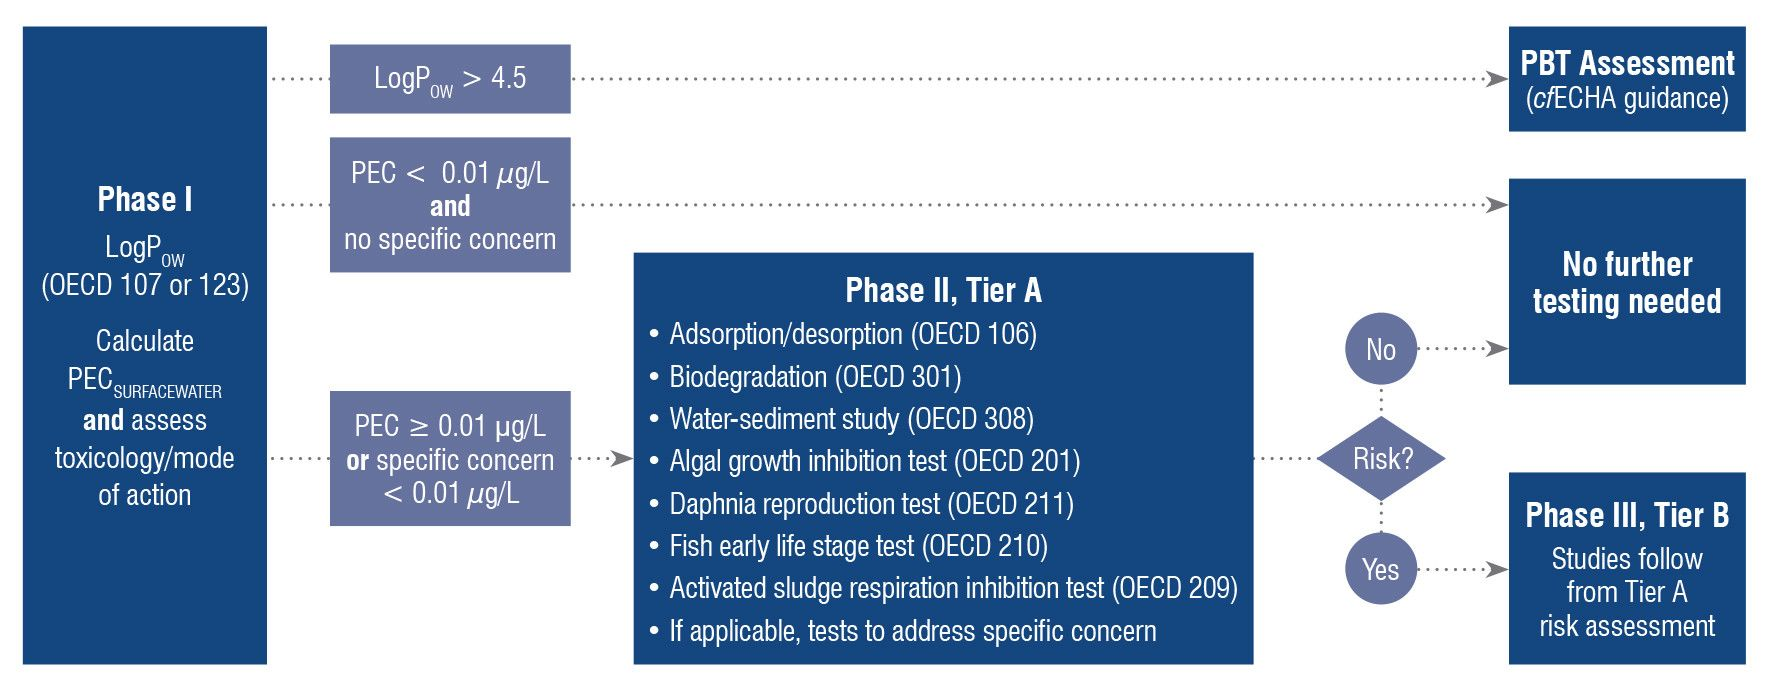 Diagram showing the EU Tiered Approach for an environmental risk assessment procedure described by the European Medicines Agency (EMA).